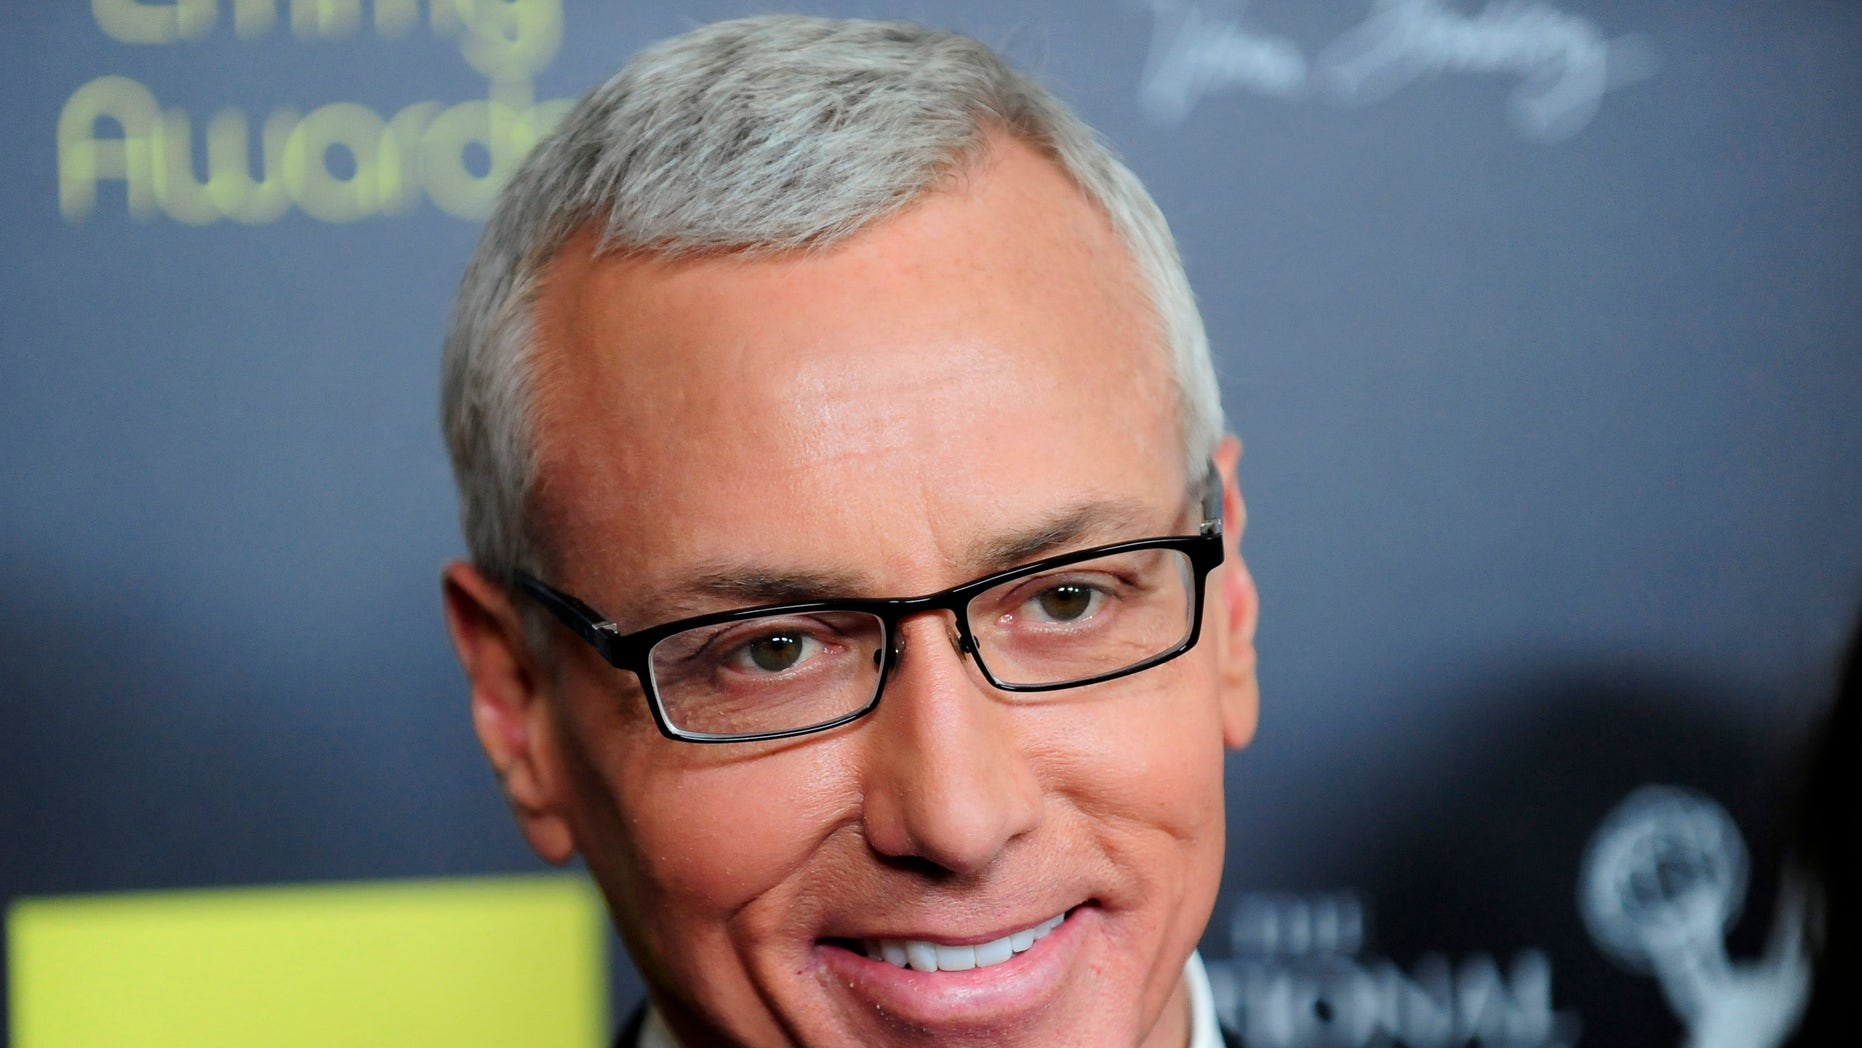 June 23, 2012. Dr Drew Pinsky arrives at the 39th Daytime Emmy Awards in Beverly Hills, California.